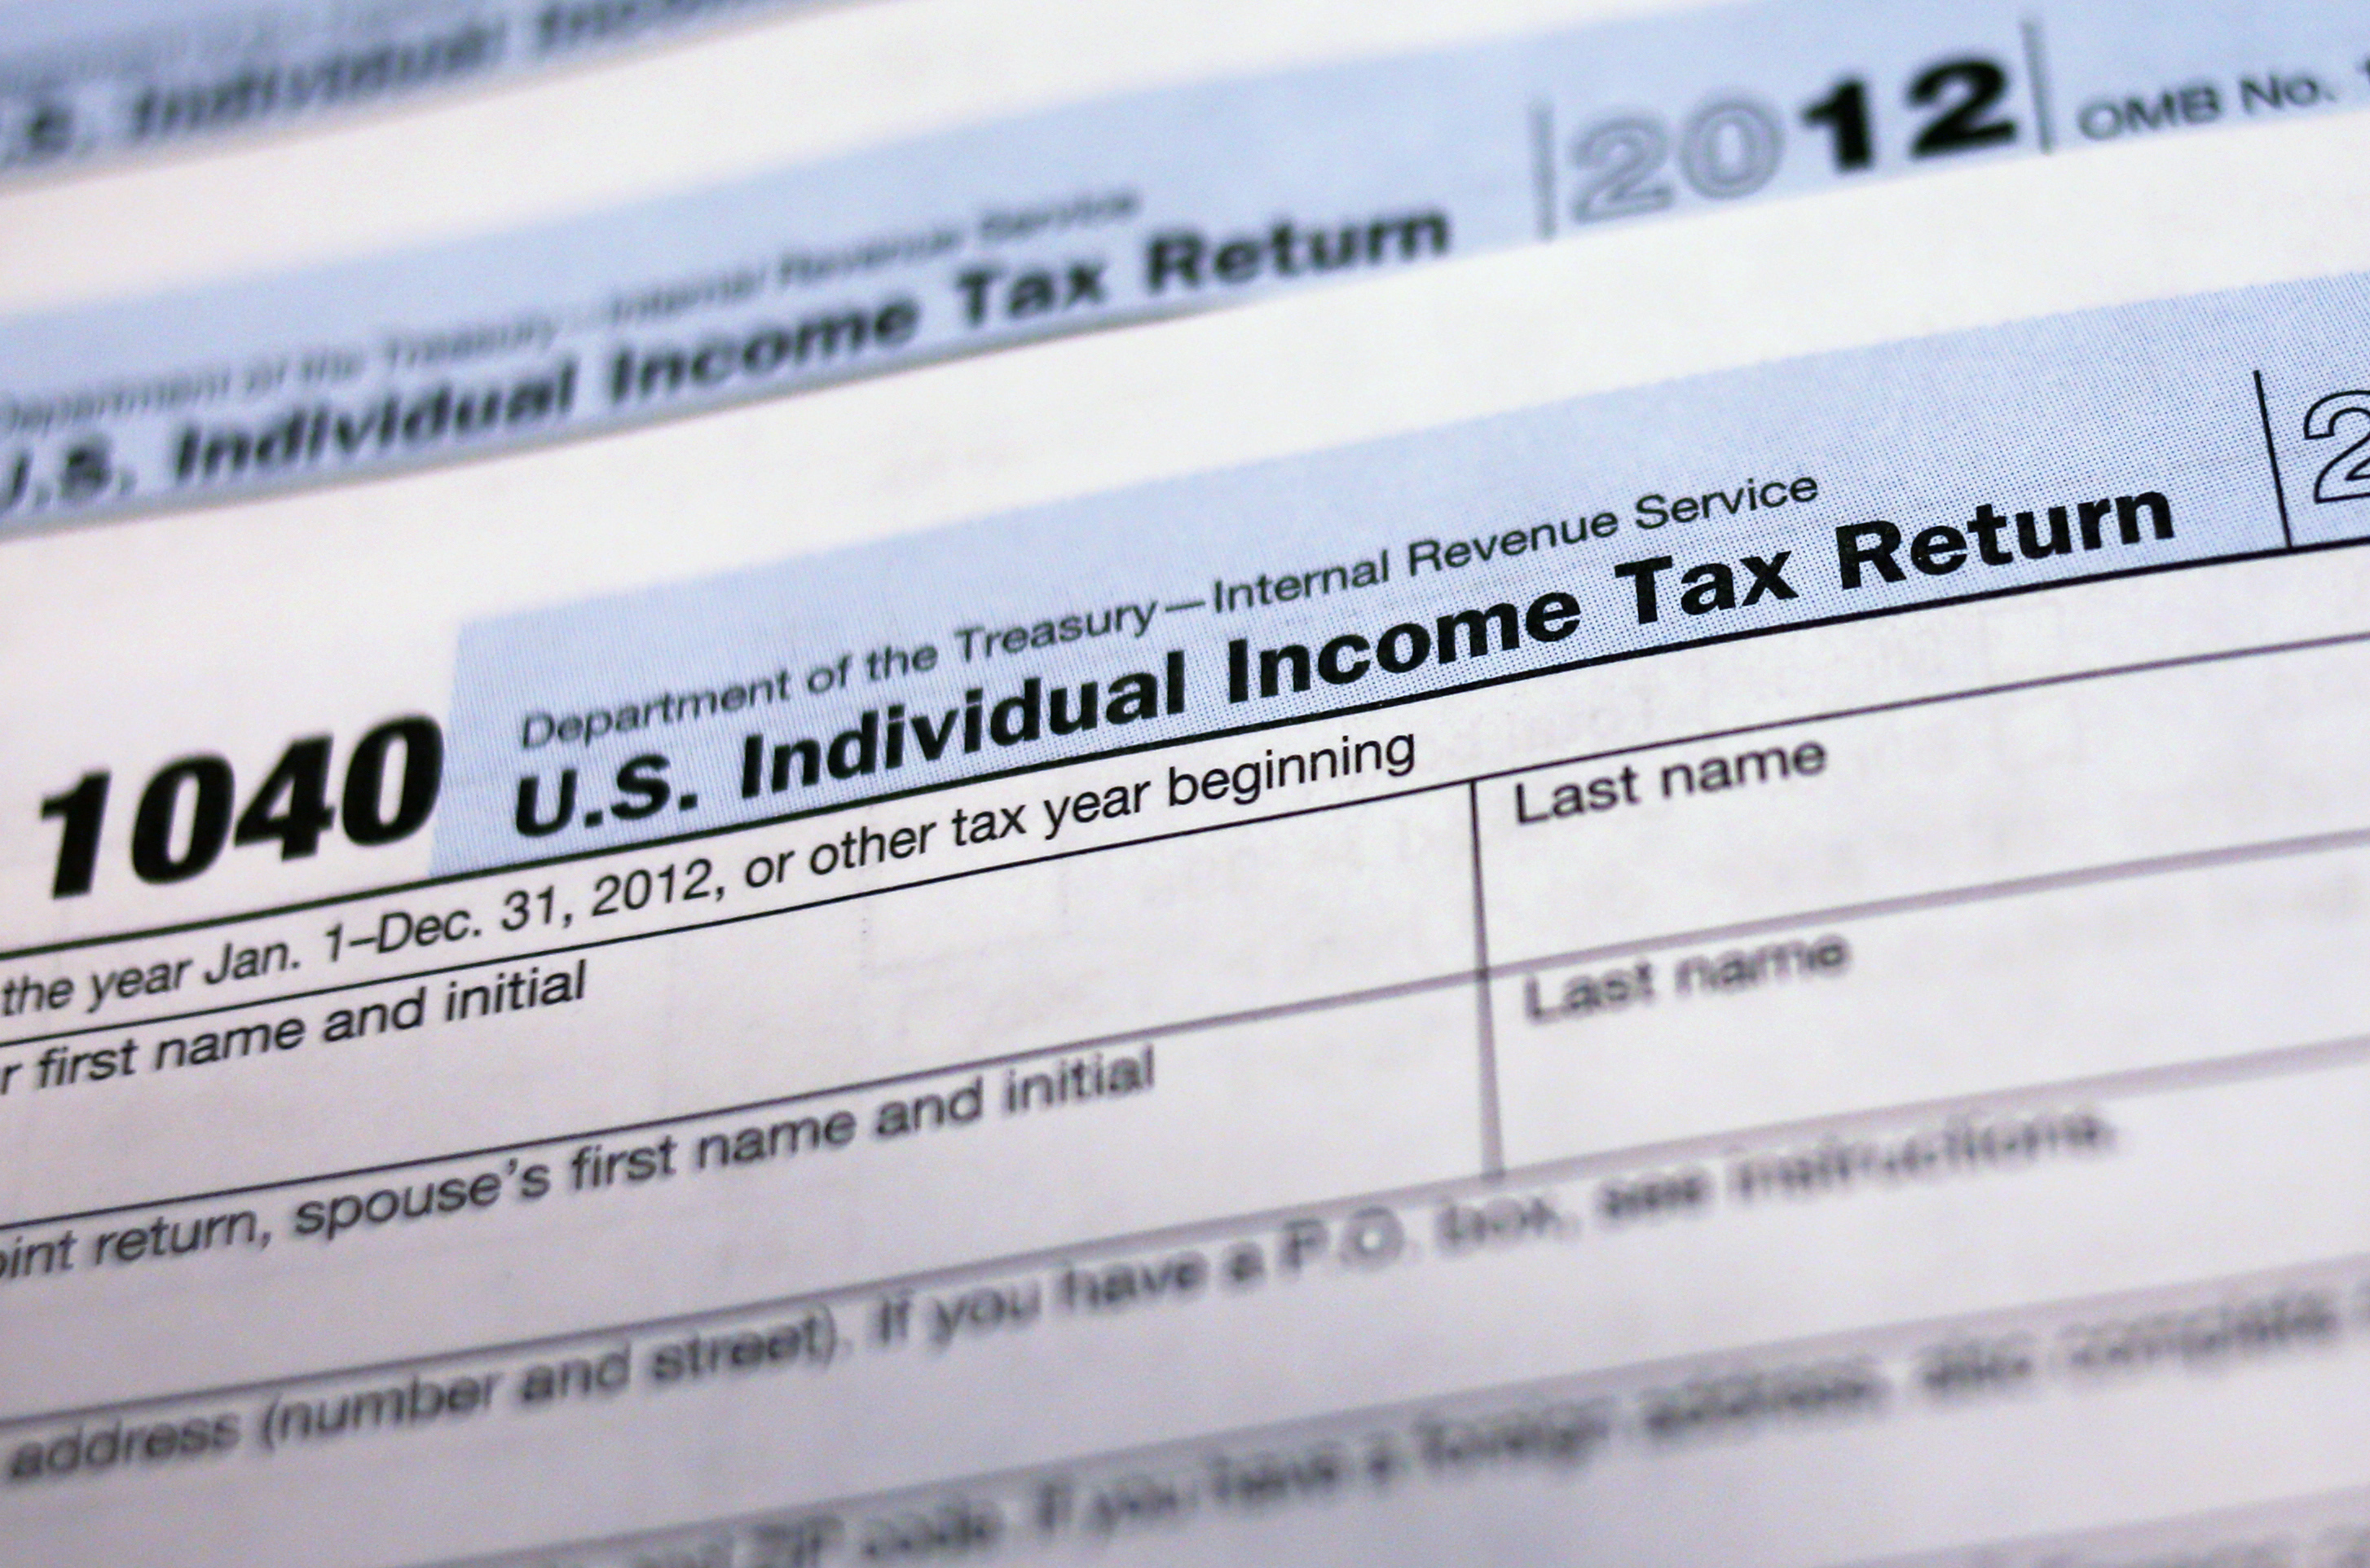 What trumps tax returns tell us the public needs to see more falaconquin